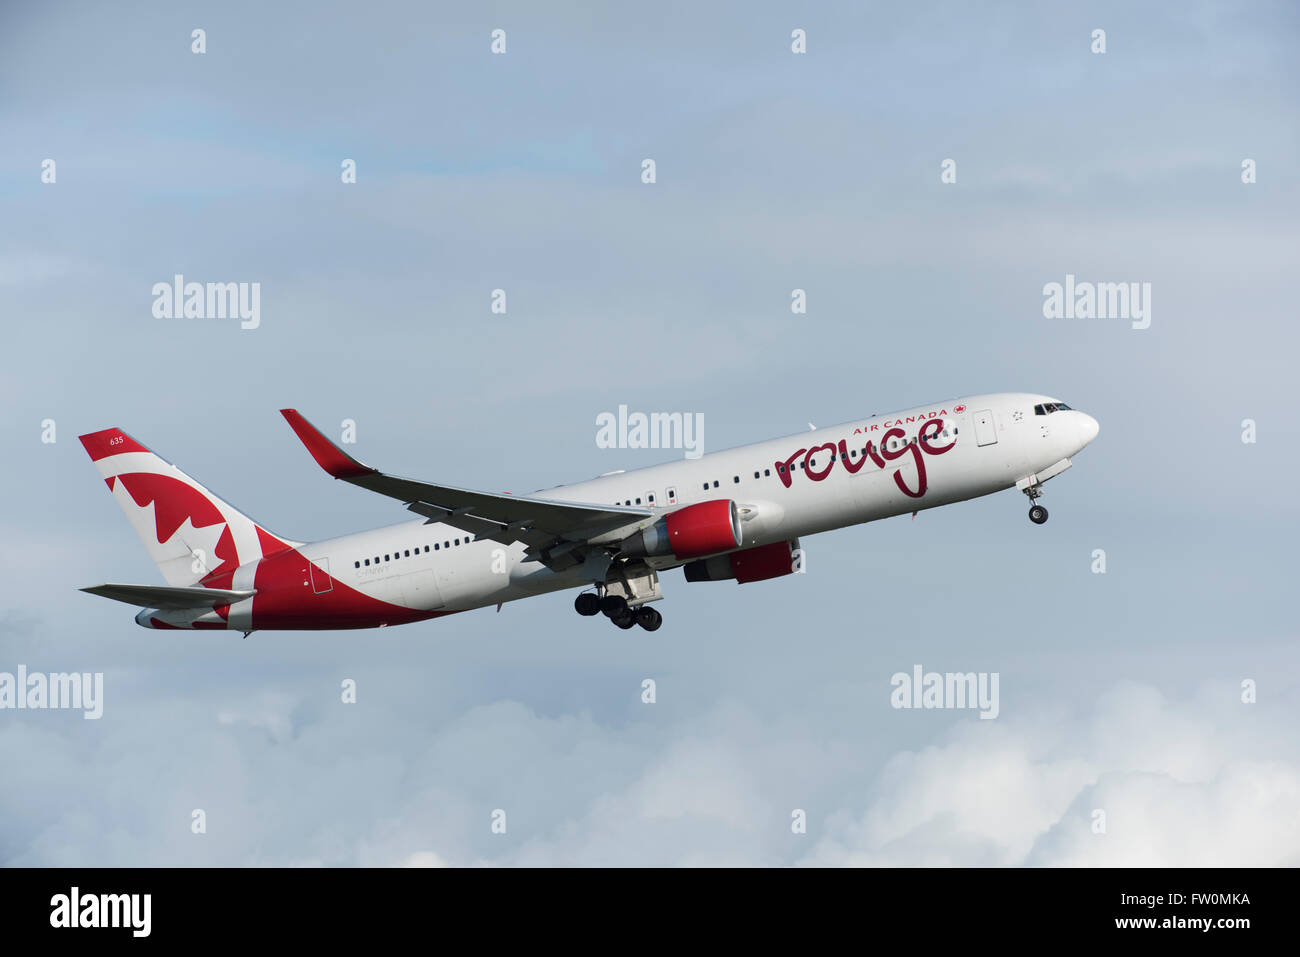 Air Canada Rouge Boeing 767-300 in air after take off from Vancouver International Airport Stock Photo